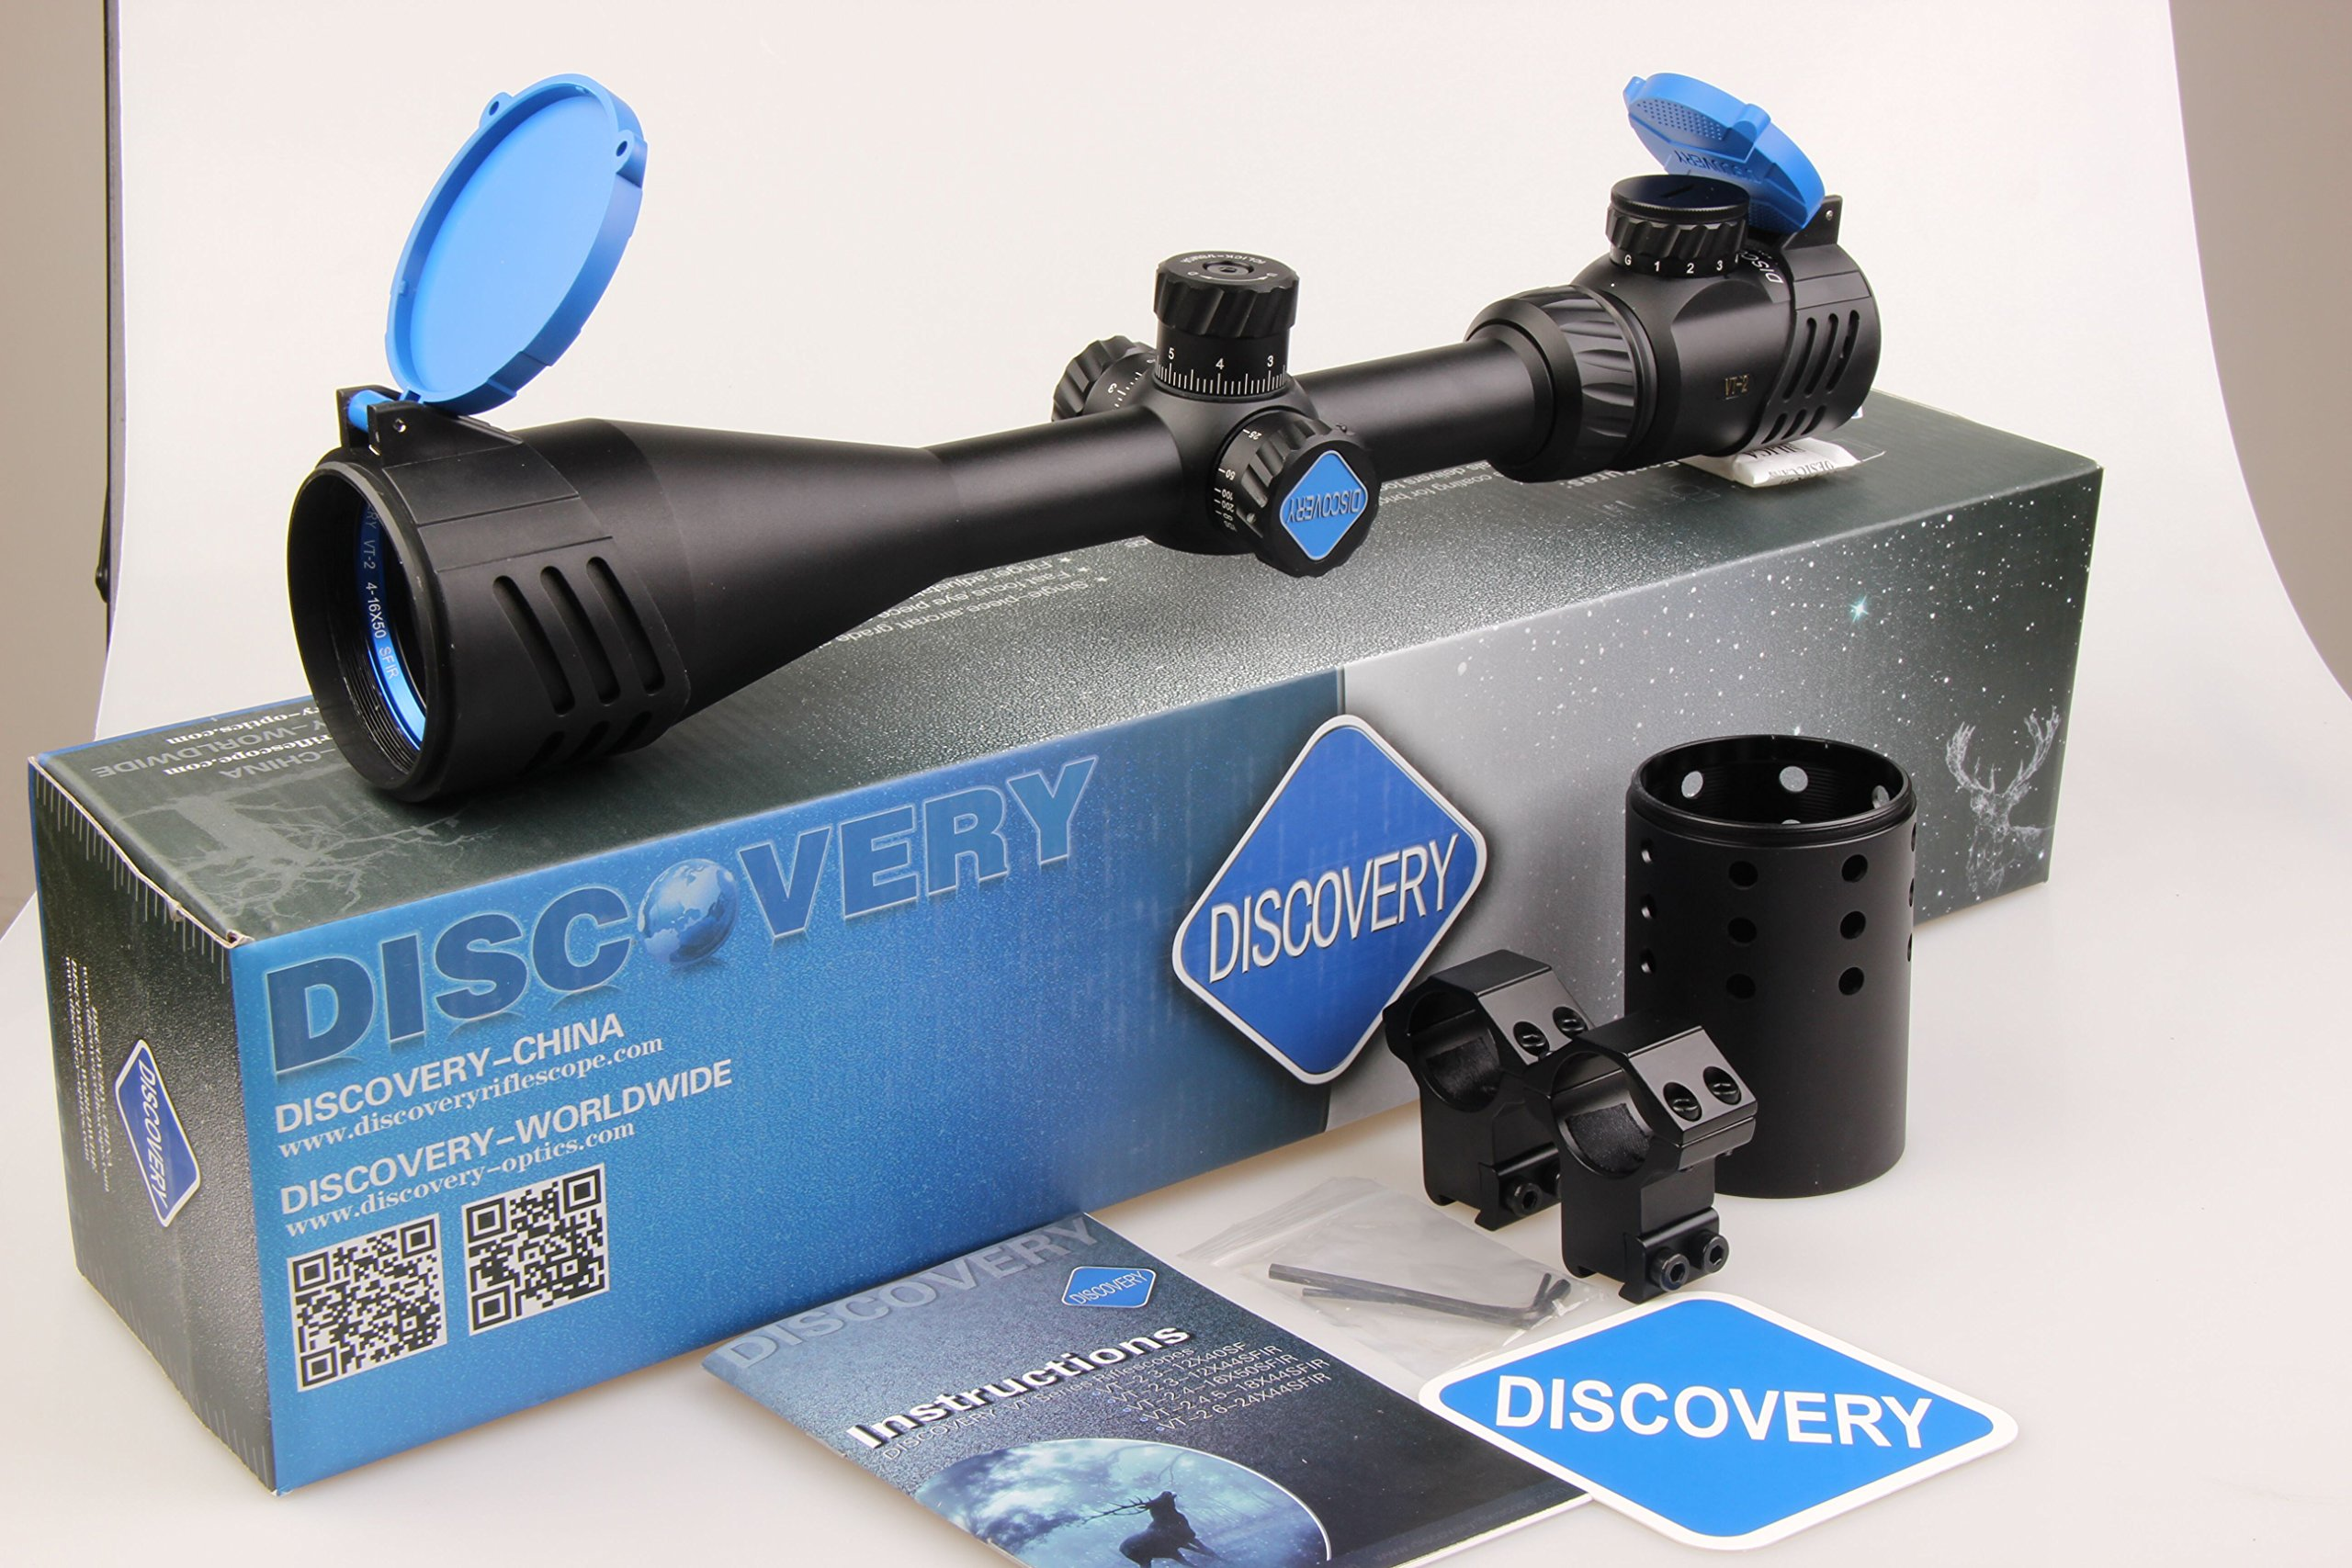 Discovery Tactical Rifle Scope 4-16X50 Gun Scope with Red & Green Mil-Dot Illuminated Range Finder Reticle and High Profile Scope Rings for Sports Hiking Hunting